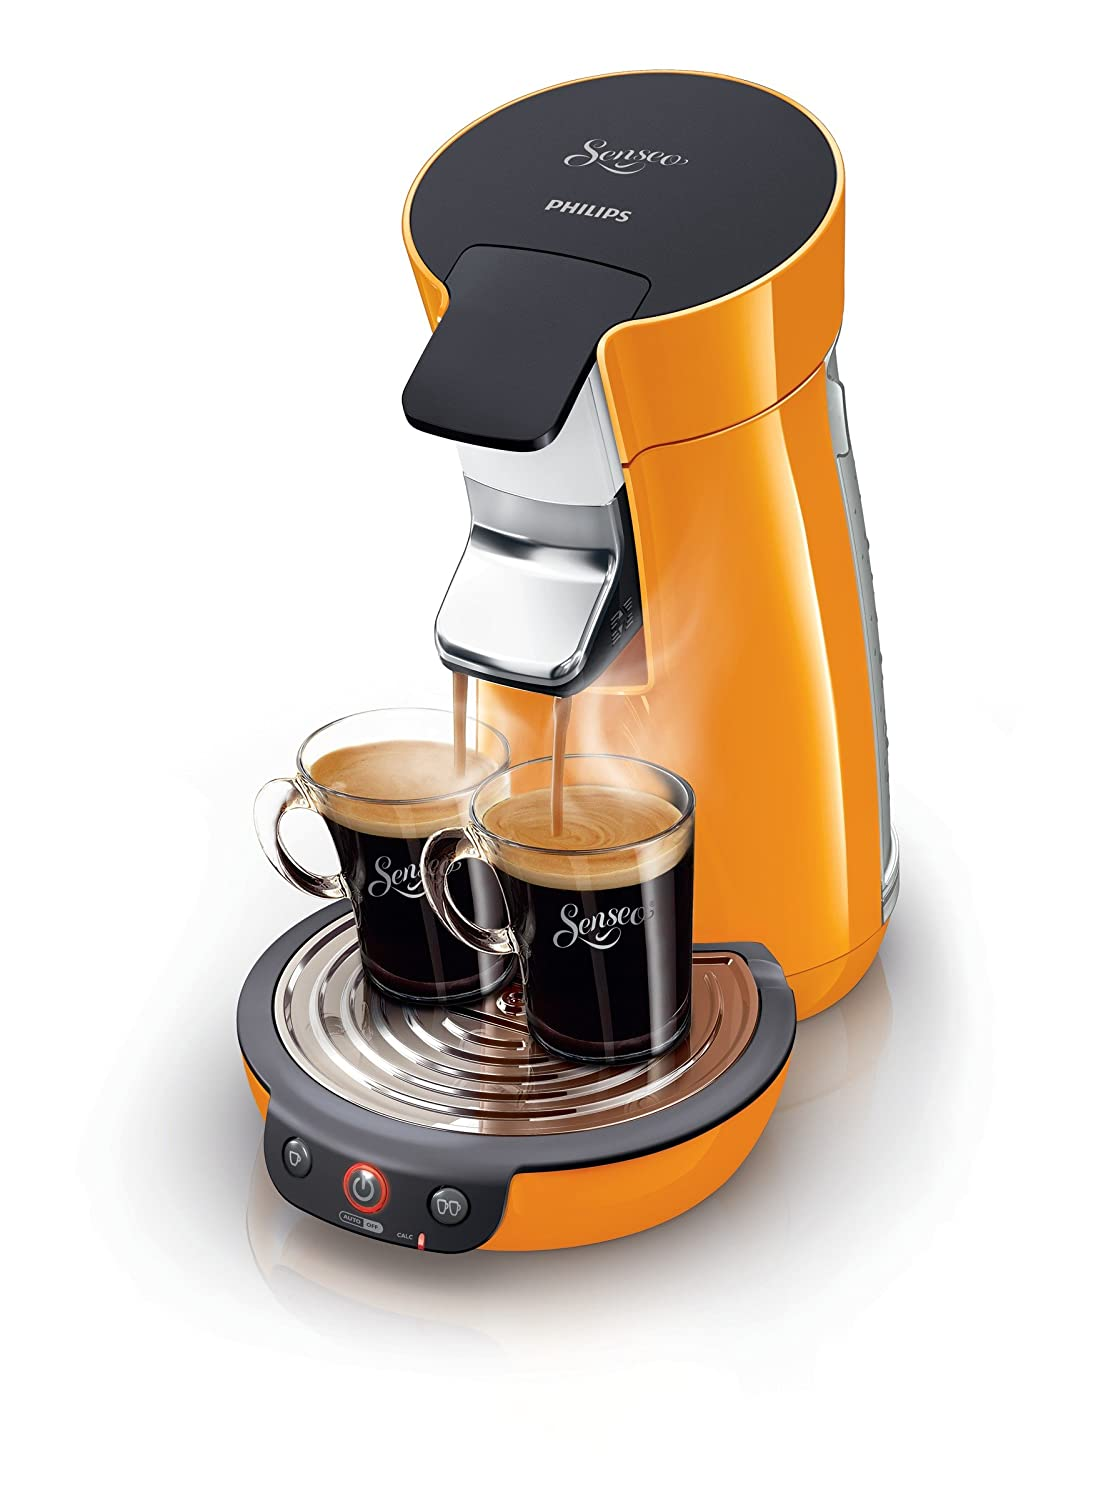 Philips HD7825/21 SENSEO - Cafetera, color naranja: Amazon.es: Hogar